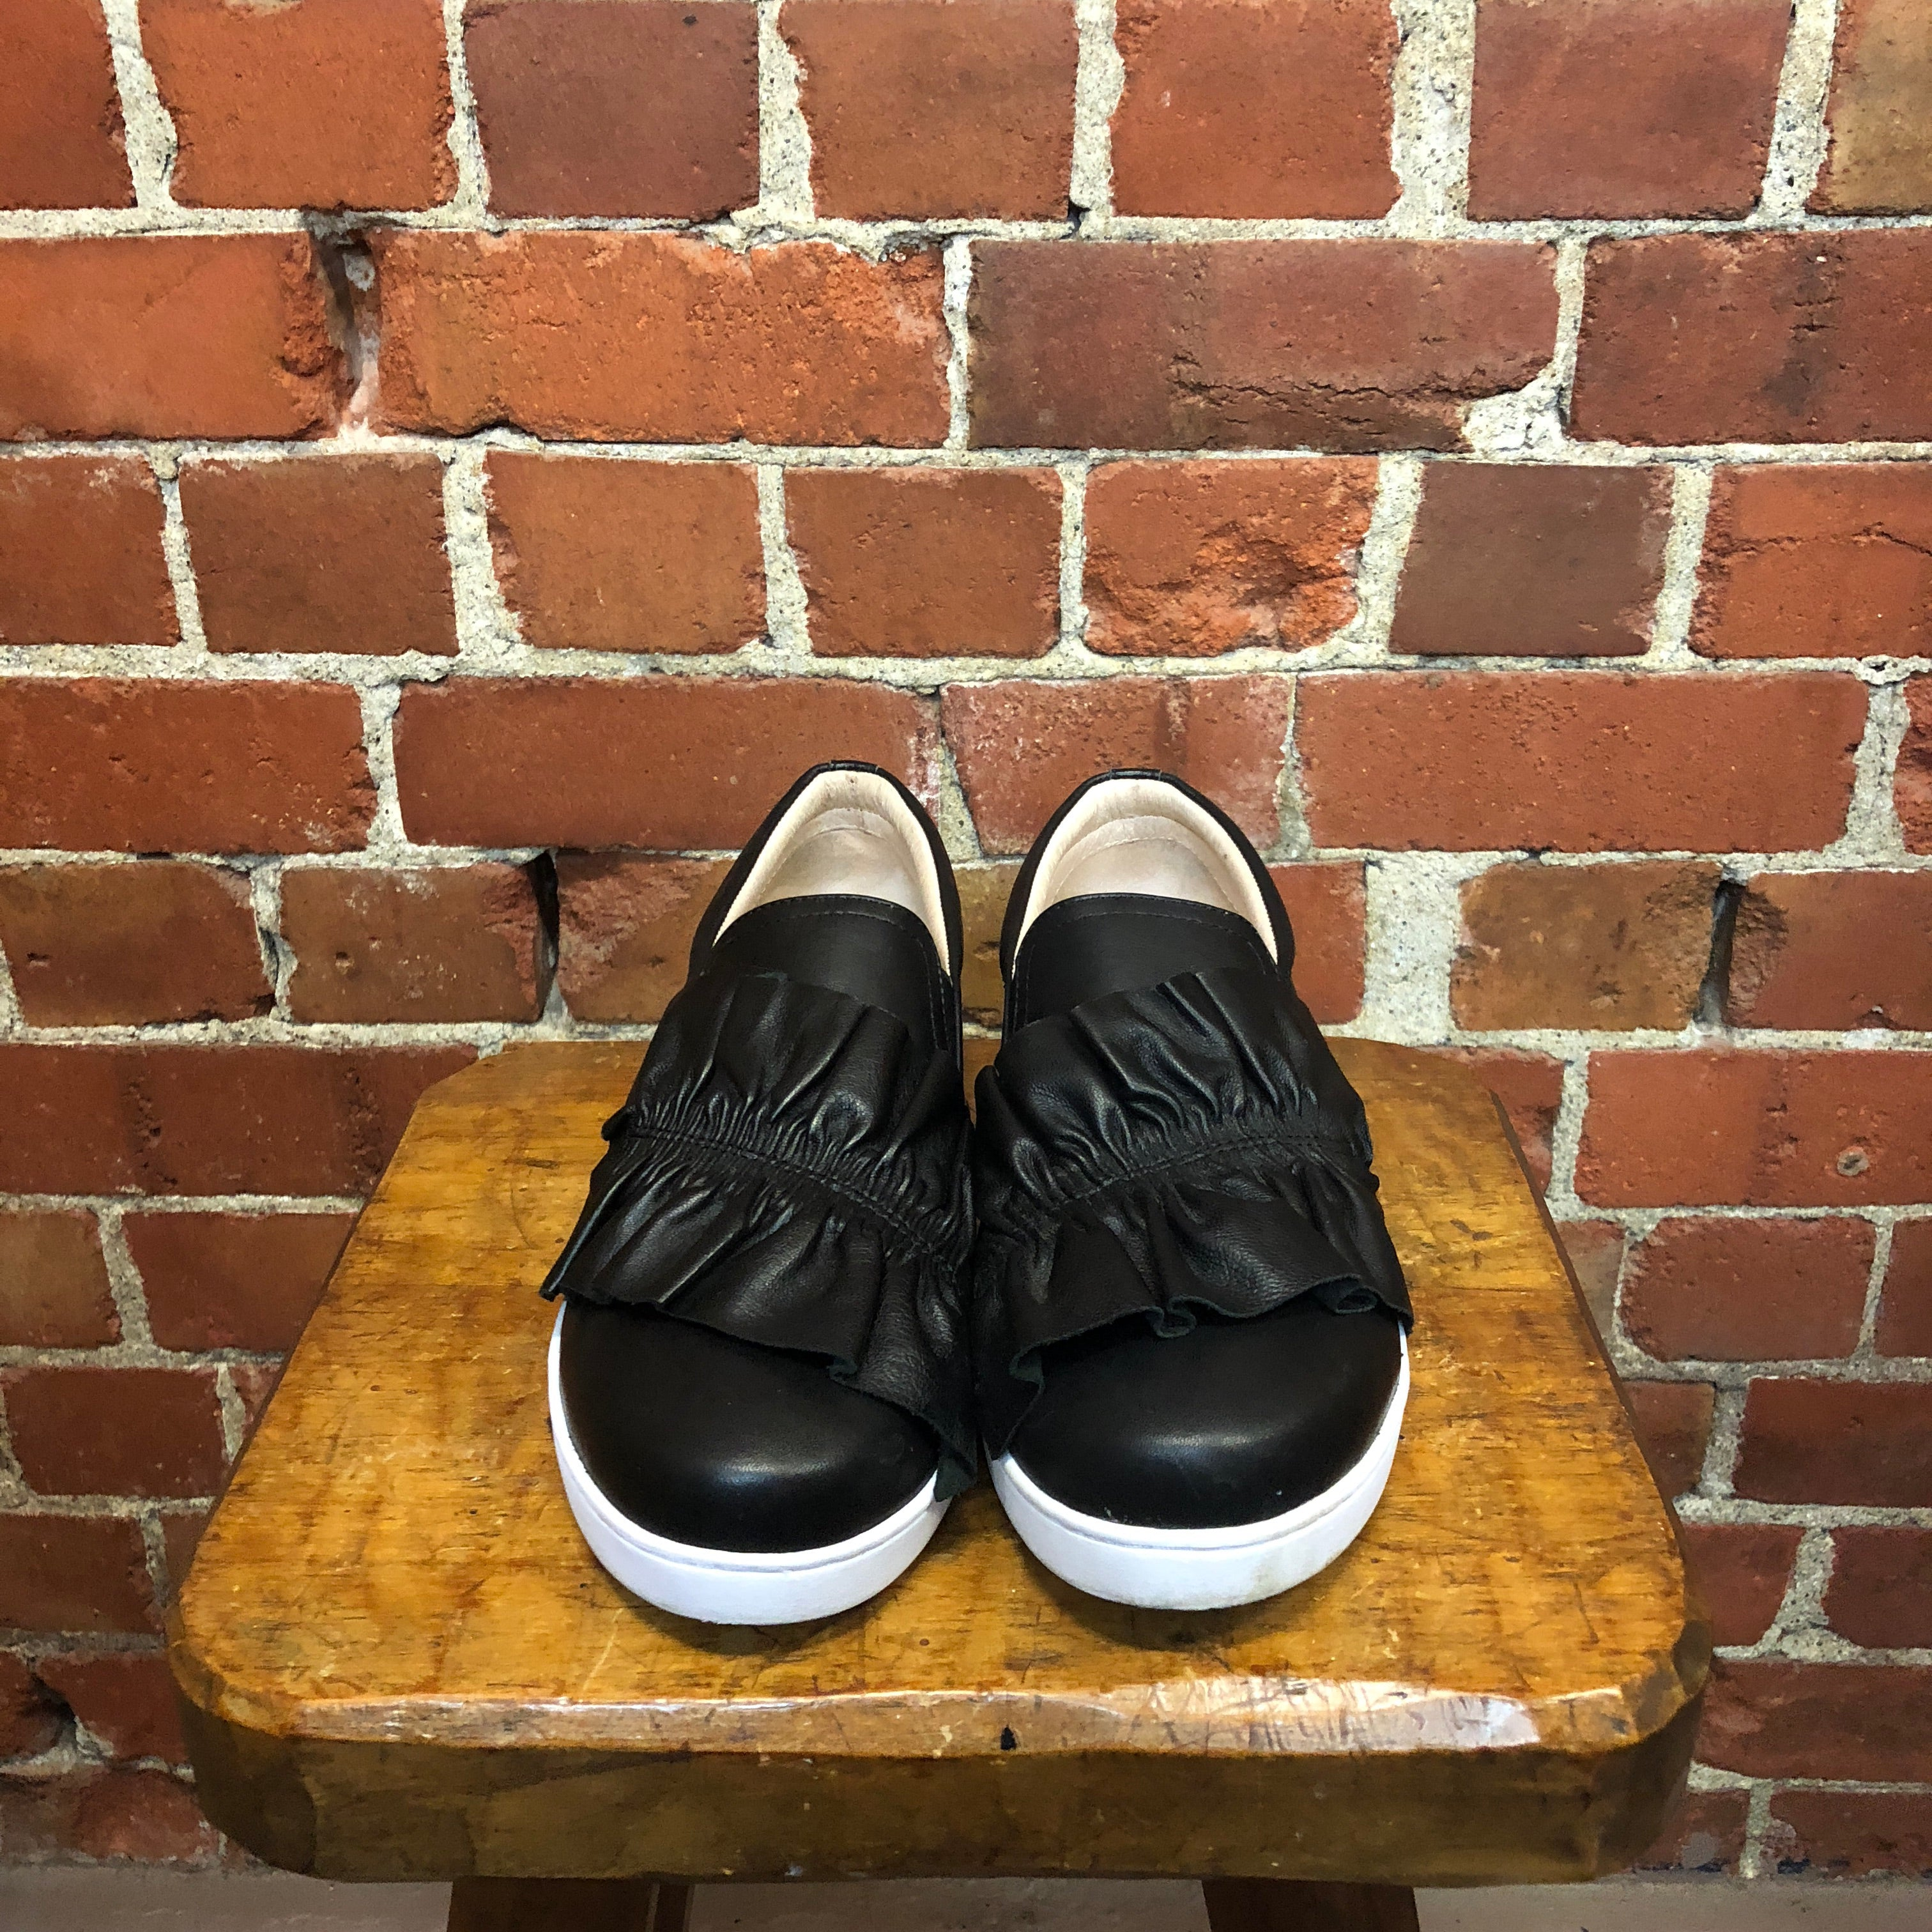 JULLIAN DANGER 40 leather sneakers